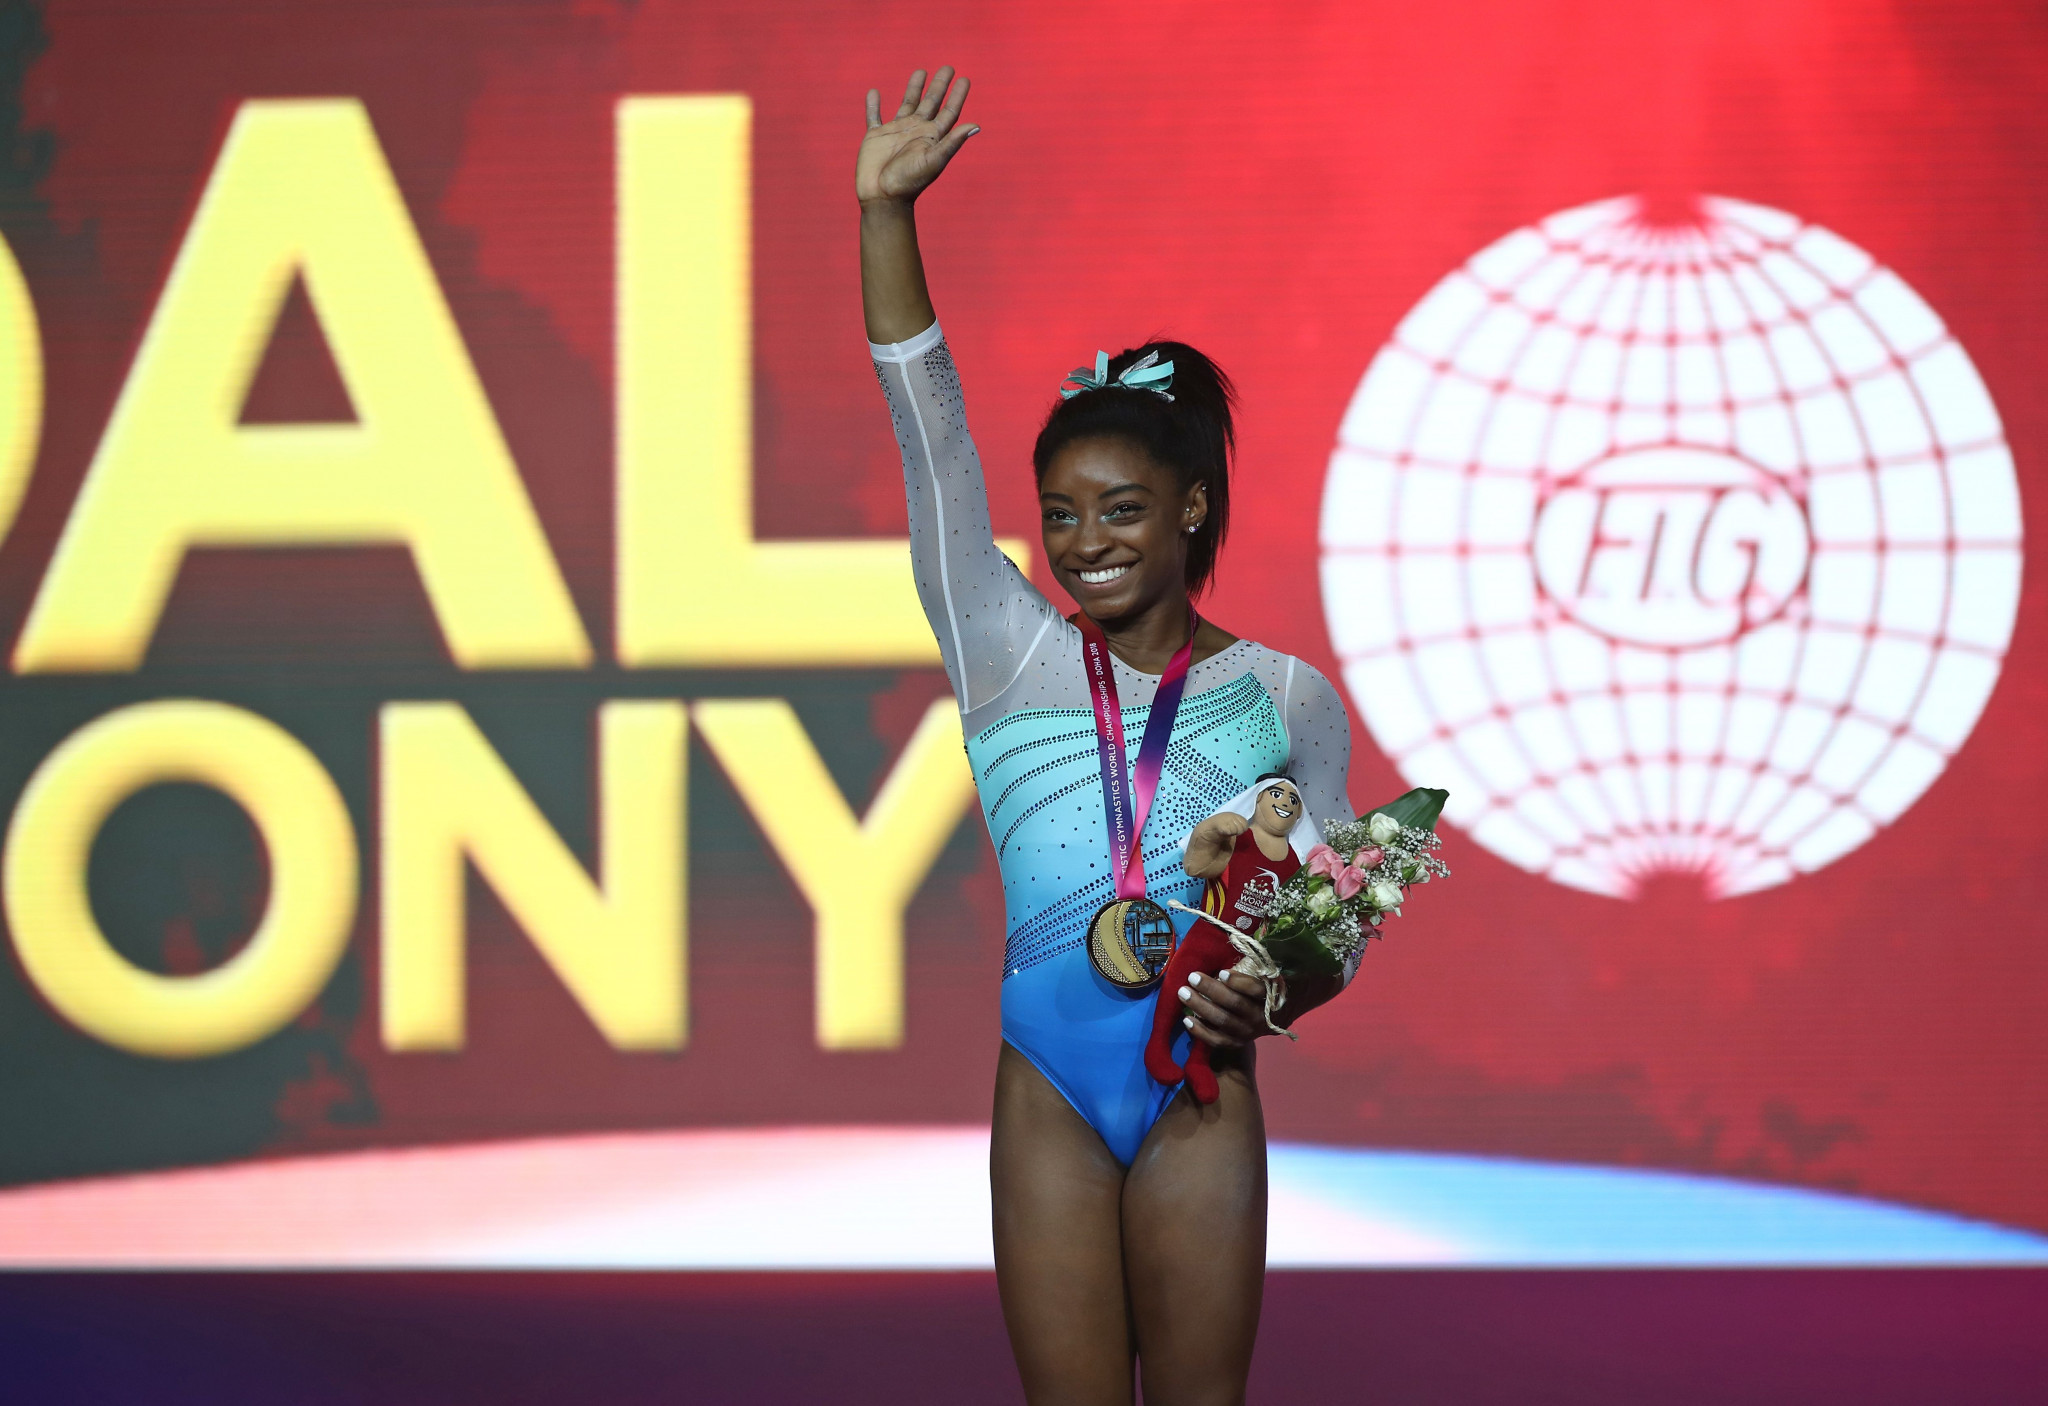 Biles makes history with fourth all-around title at Artistic Gymnastics World Championships